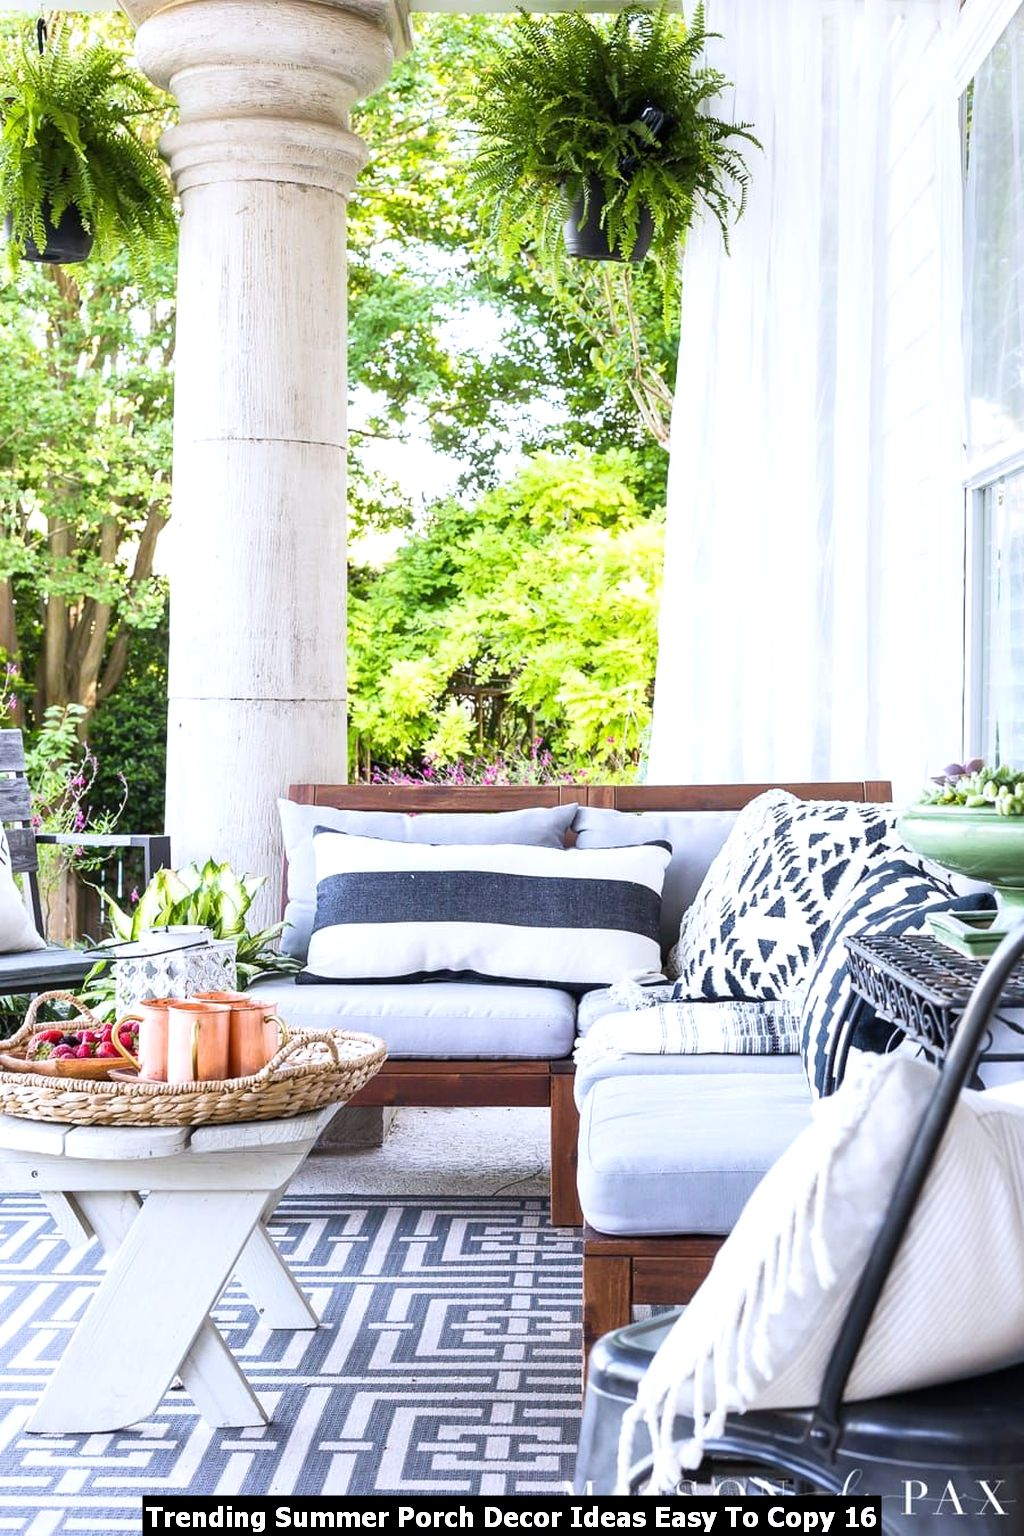 Trending Summer Porch Decor Ideas Easy To Copy 16